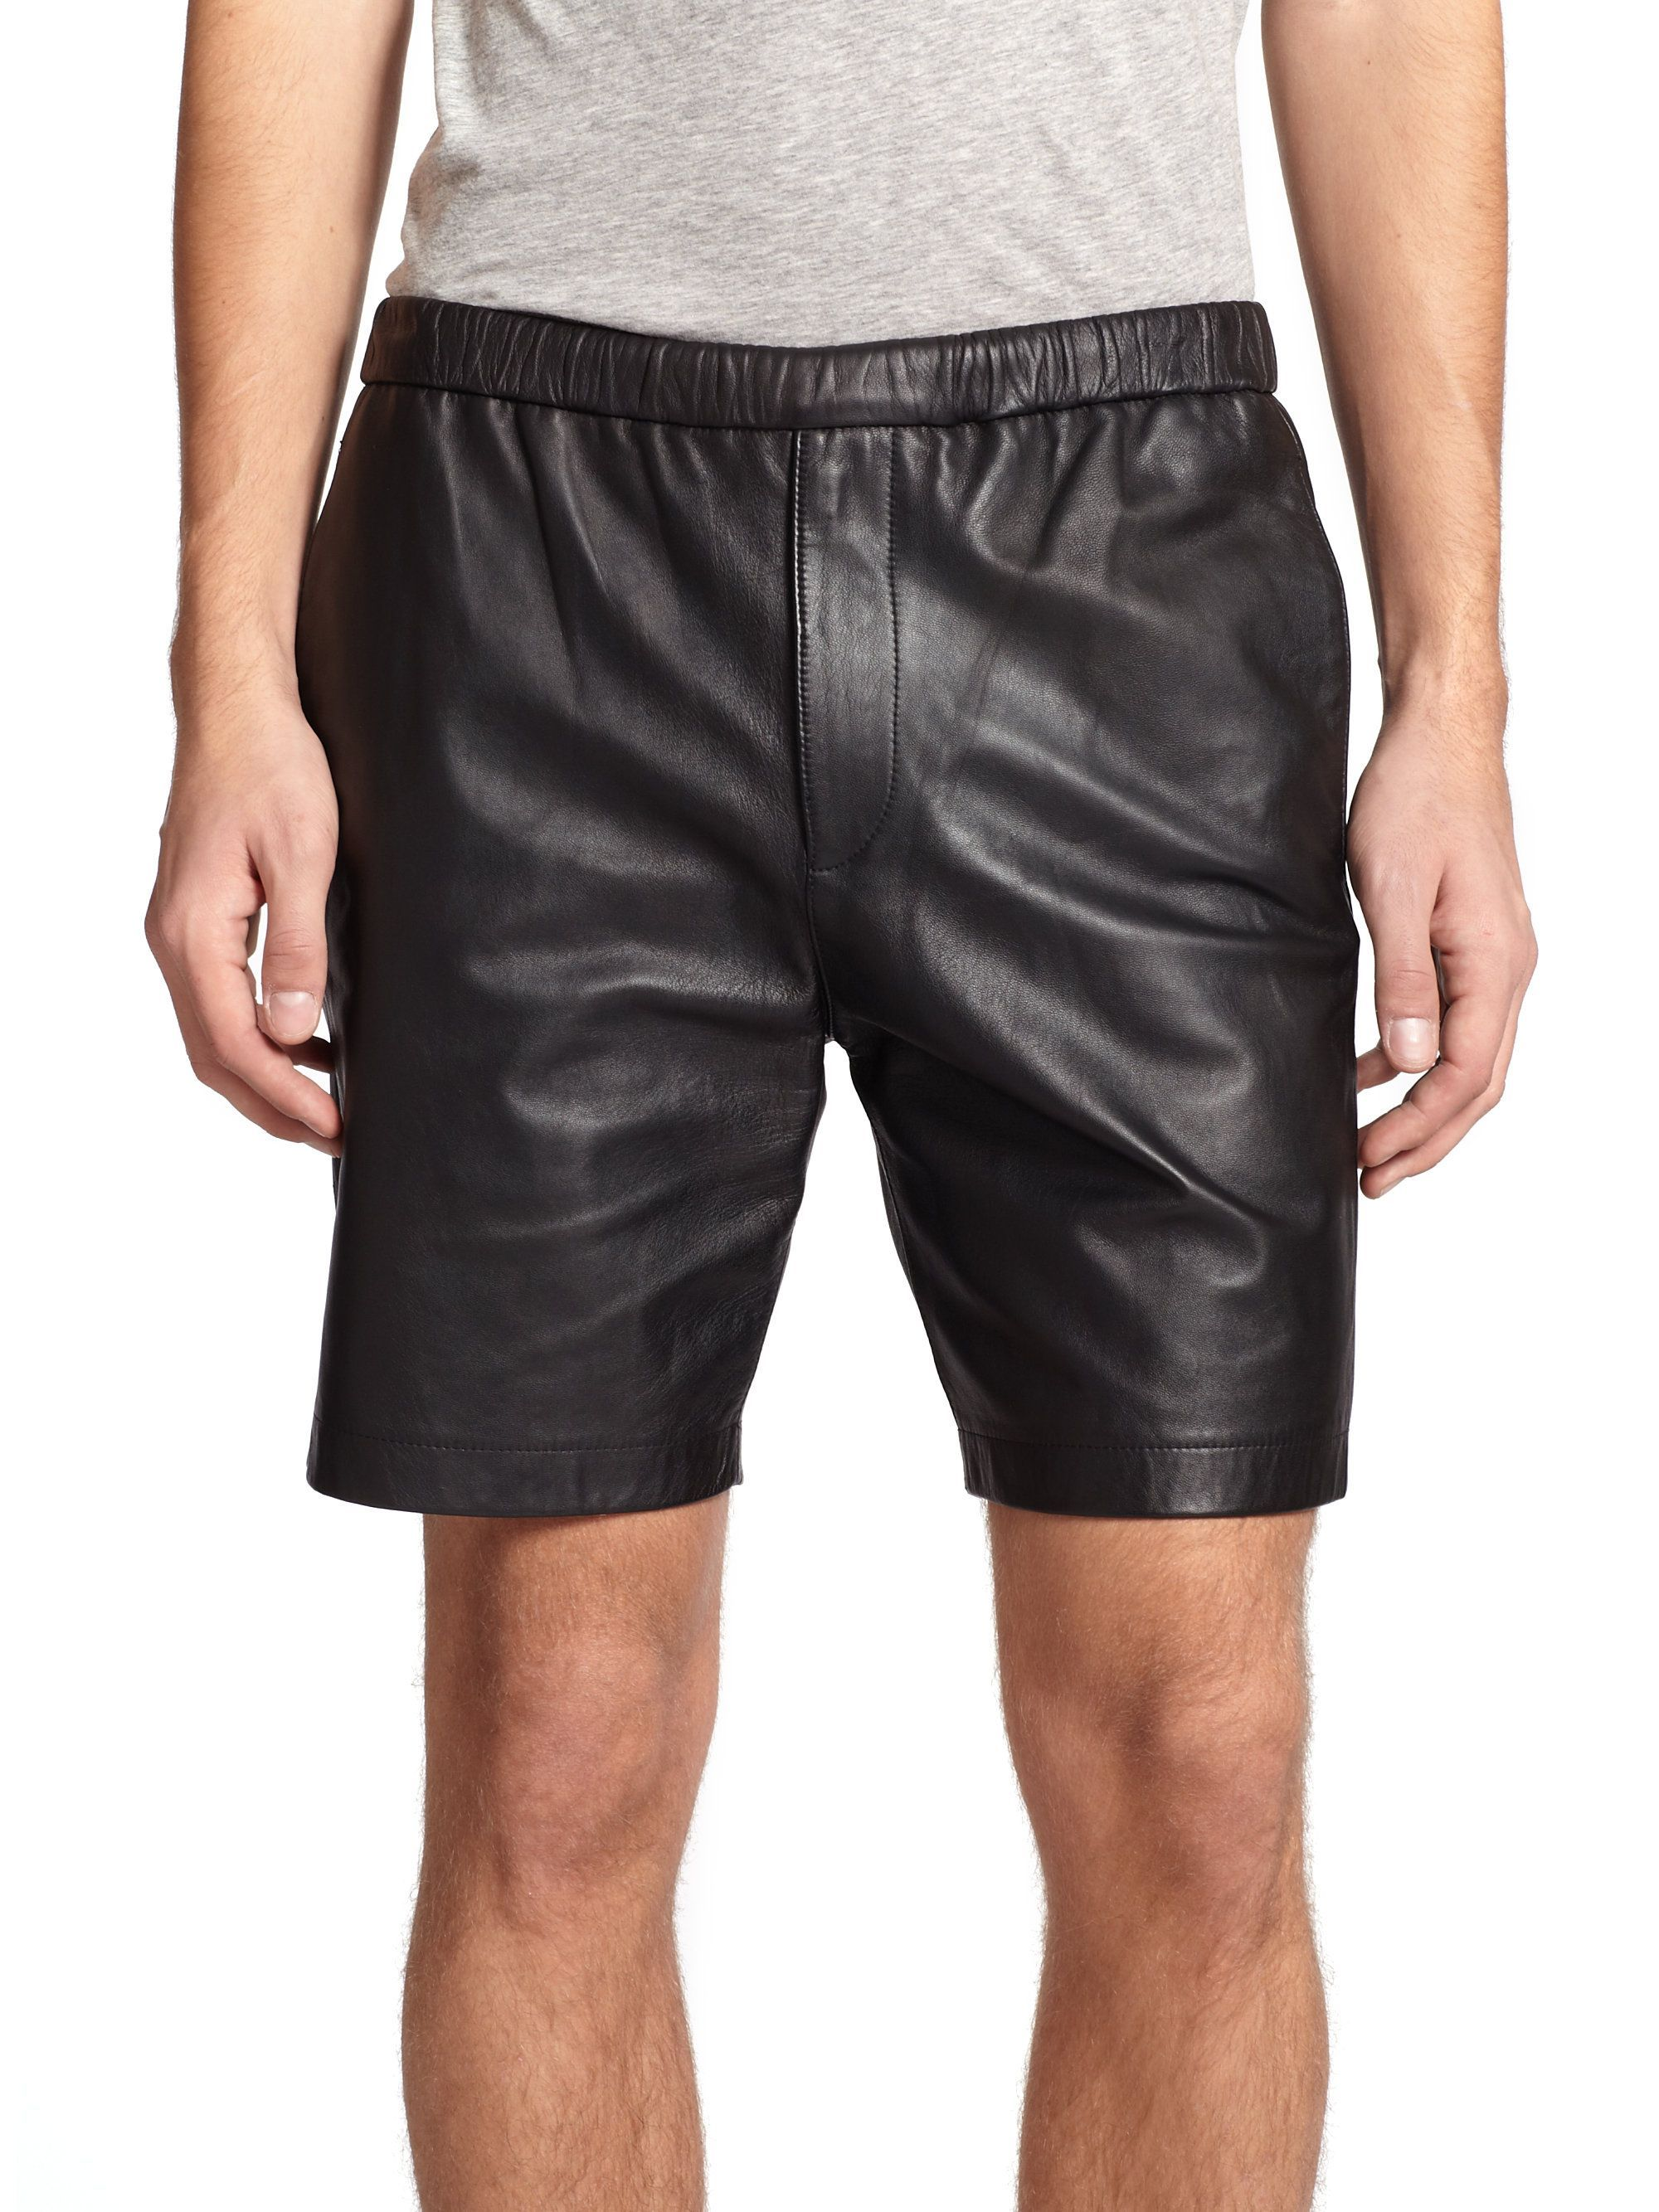 simple classic fashion black leather shorts for men in